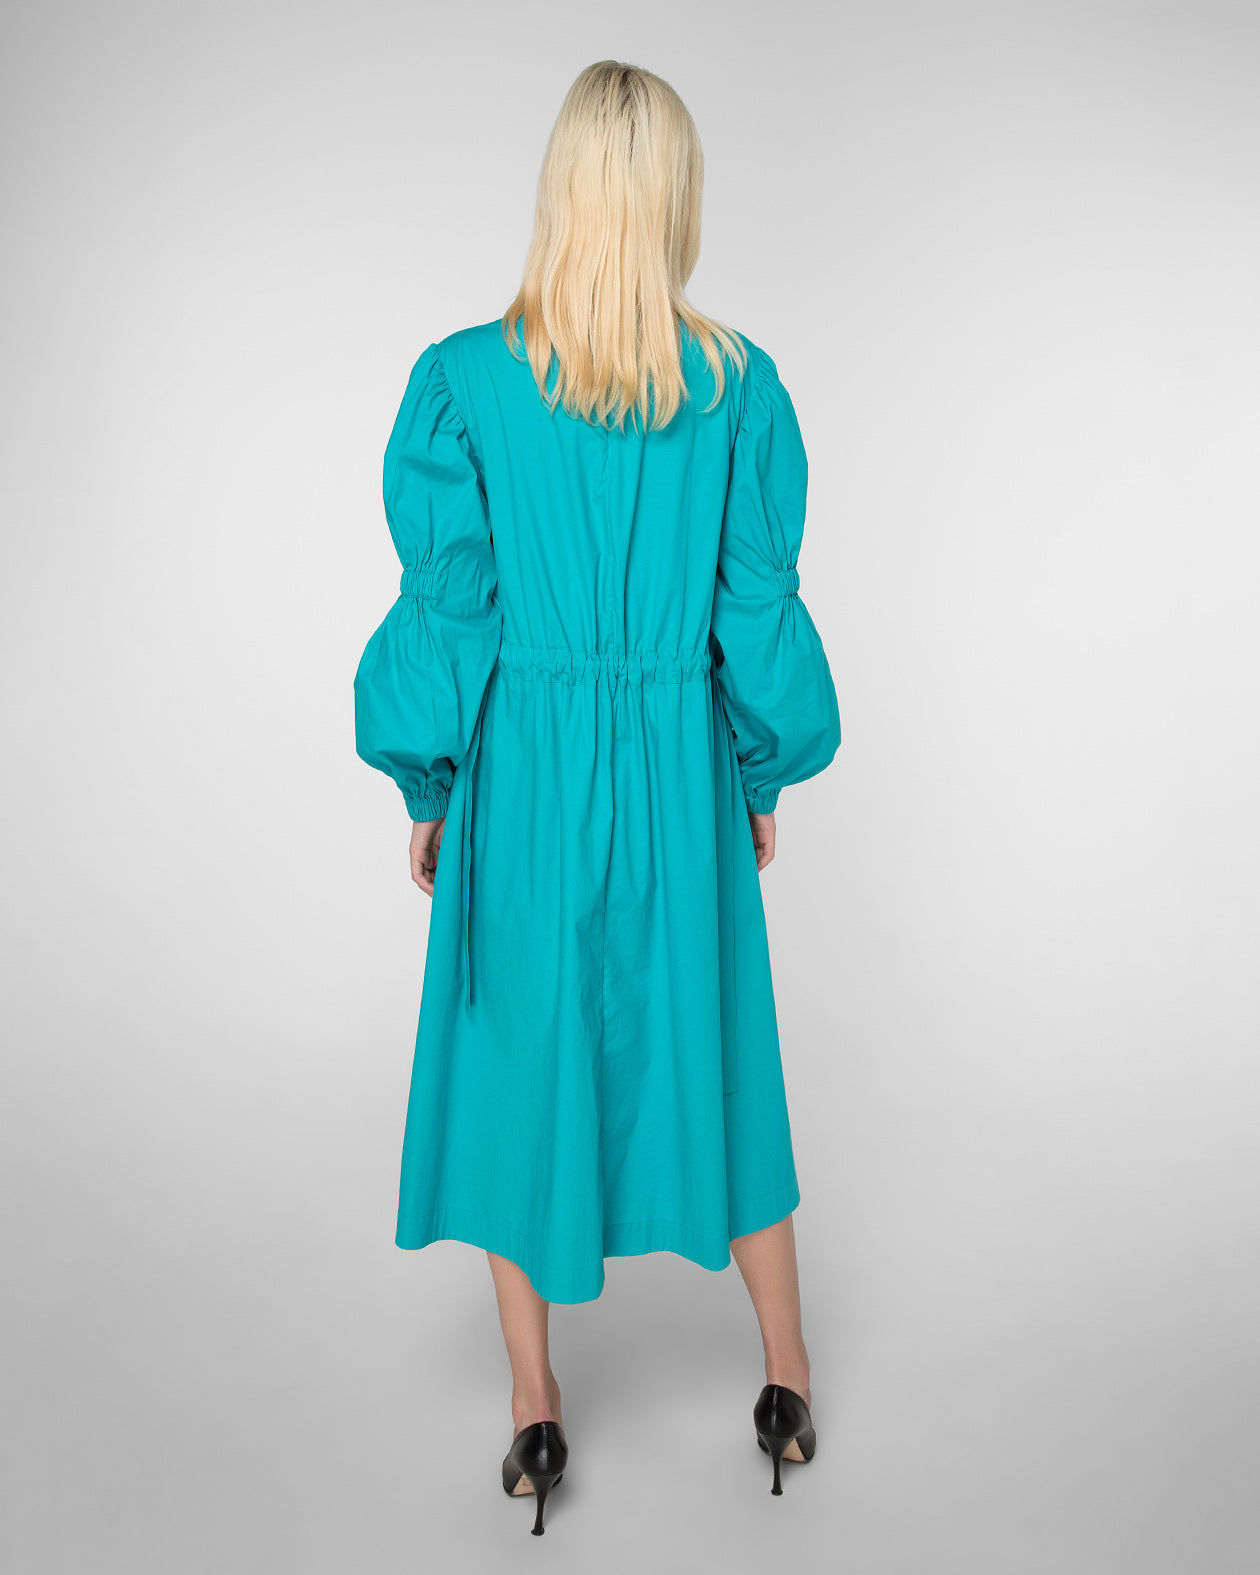 Long sleeve dress with frontal patch pockets